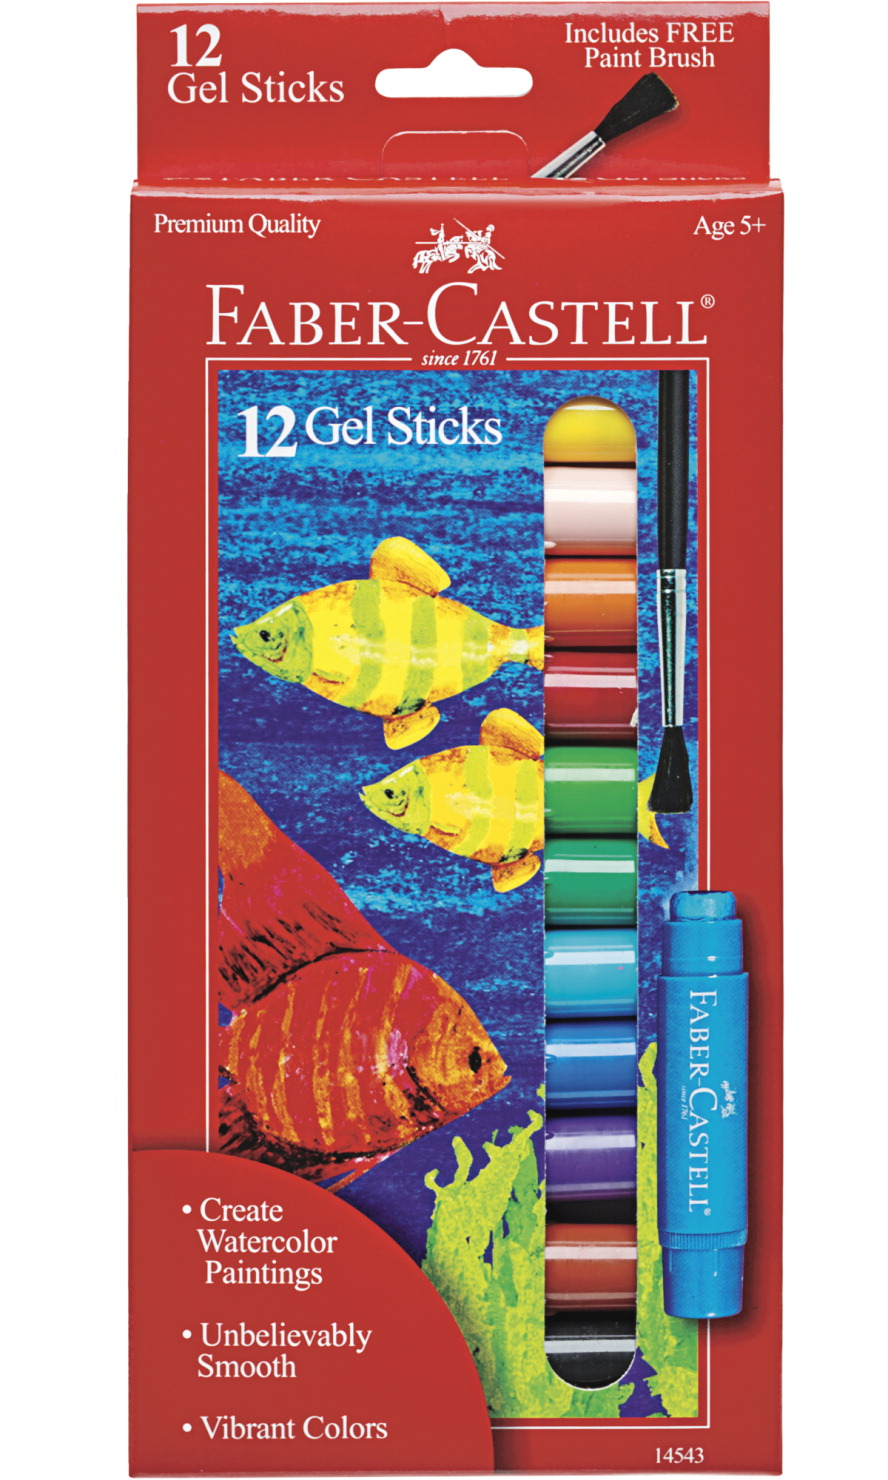 Faber-Castell Gel Sticks, Assorted Colors, Set of 12